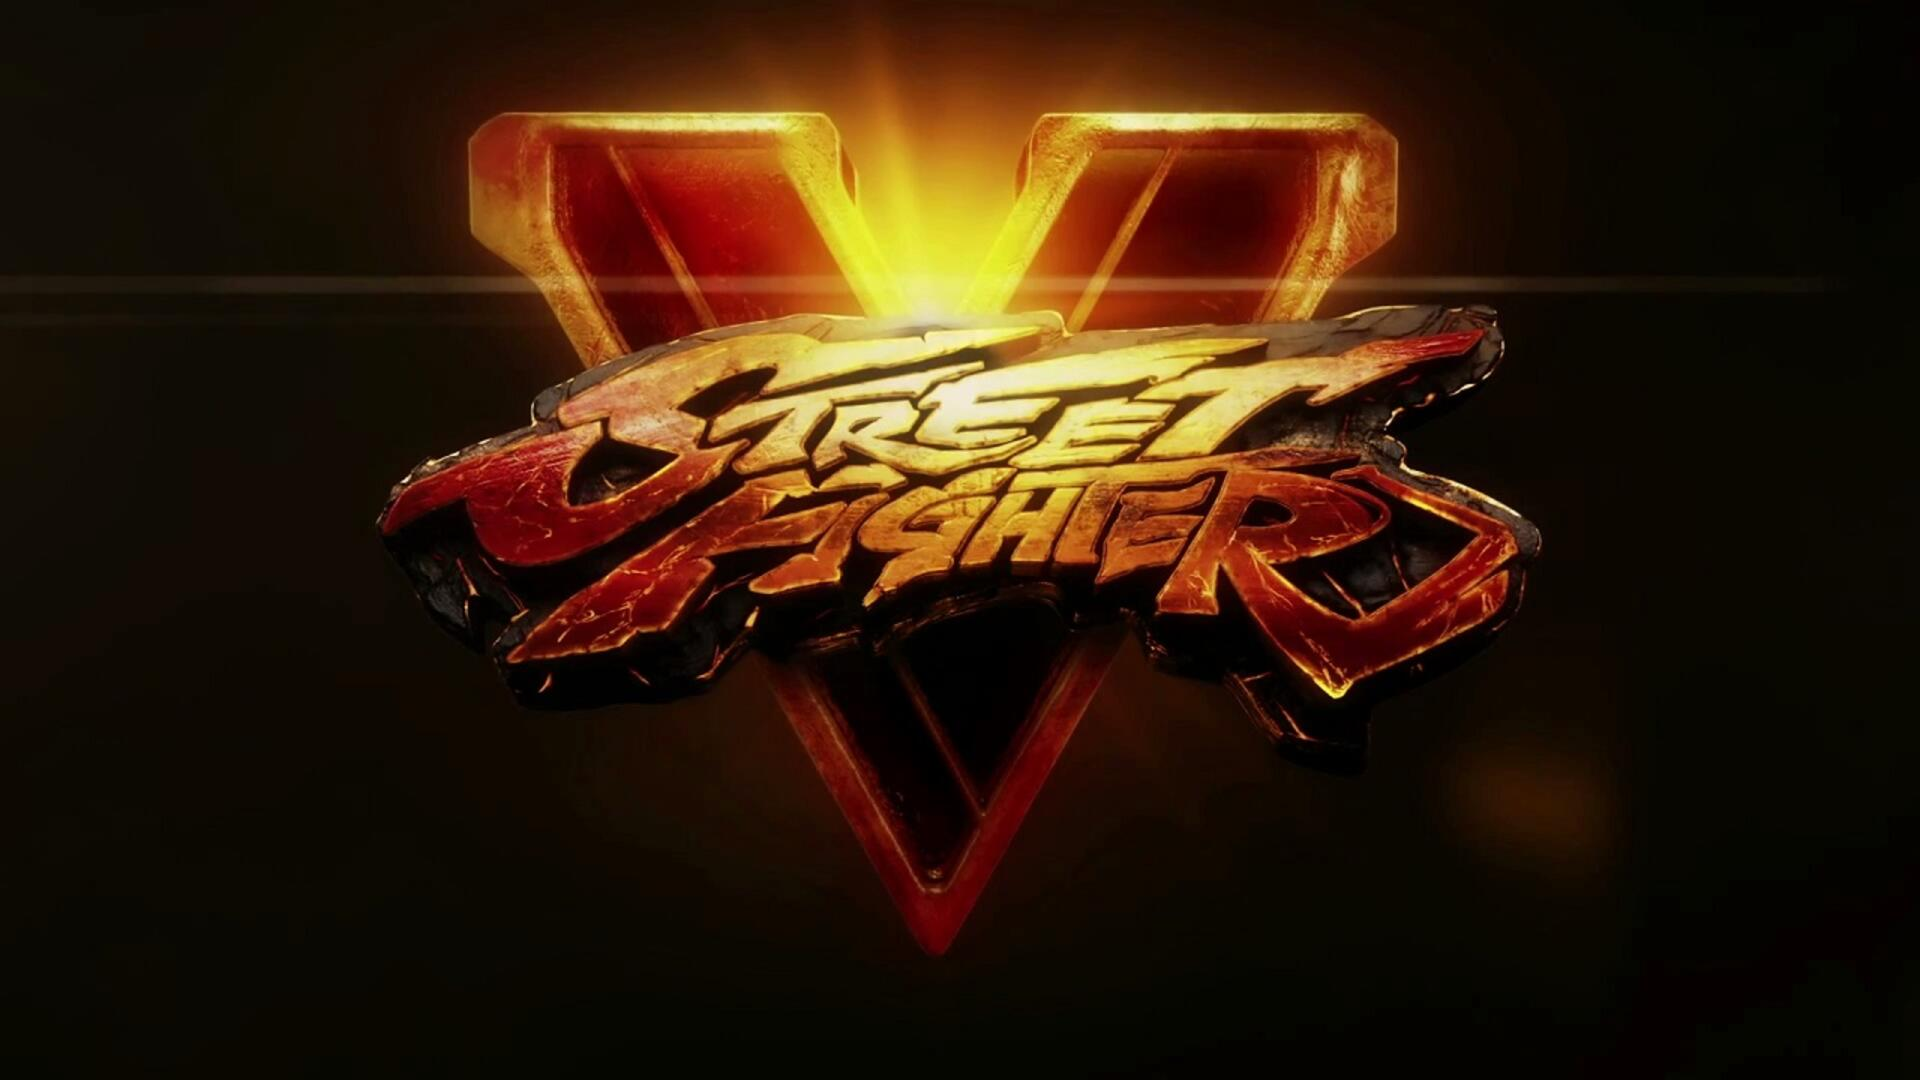 Street Fighter V Beta: Day 0: What We Know So Far